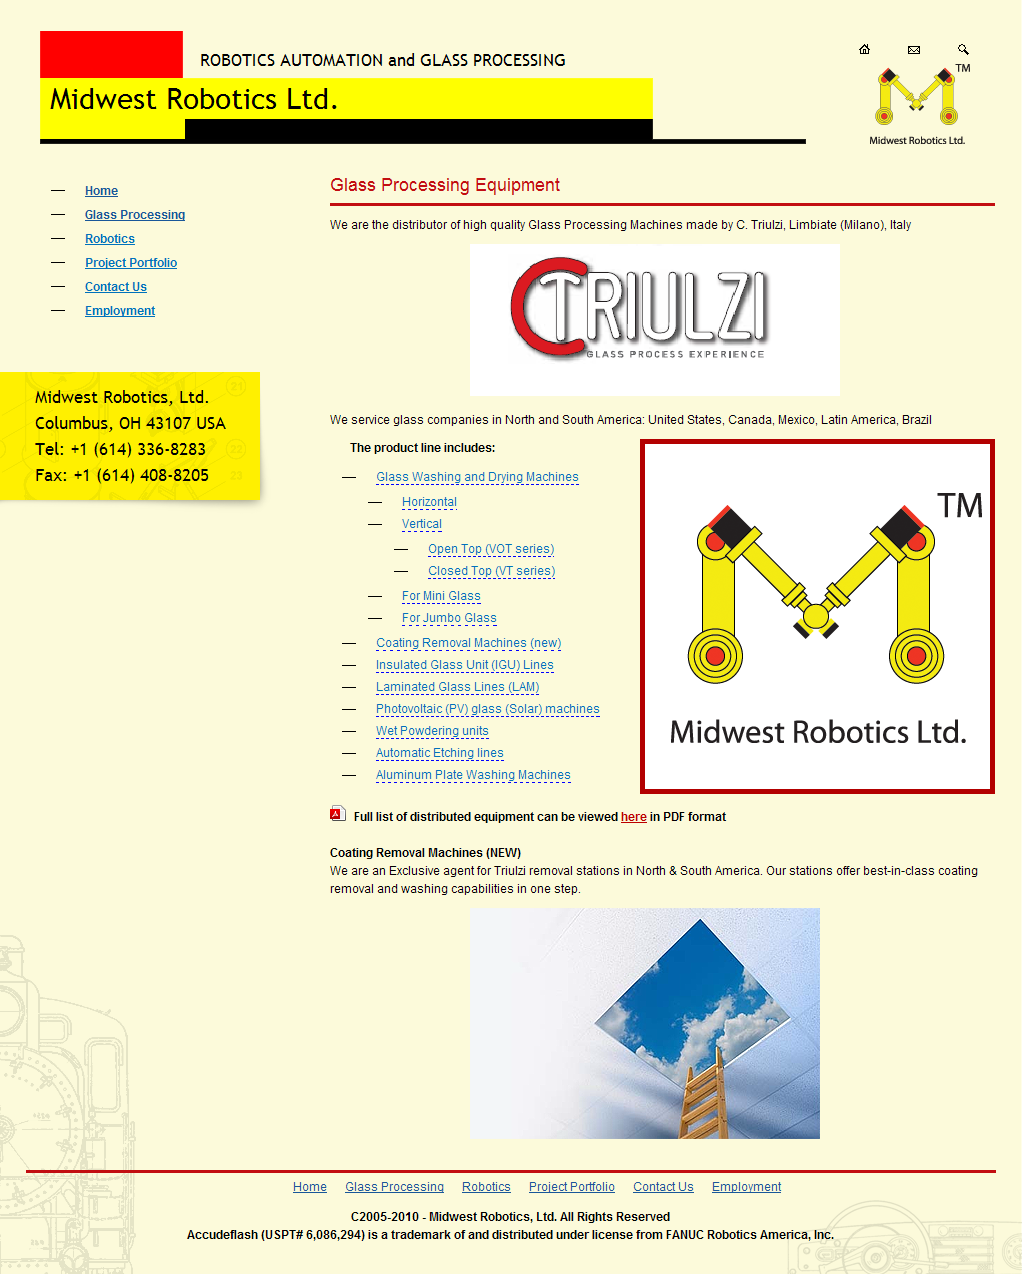 Midwest robotics. Glass processing page